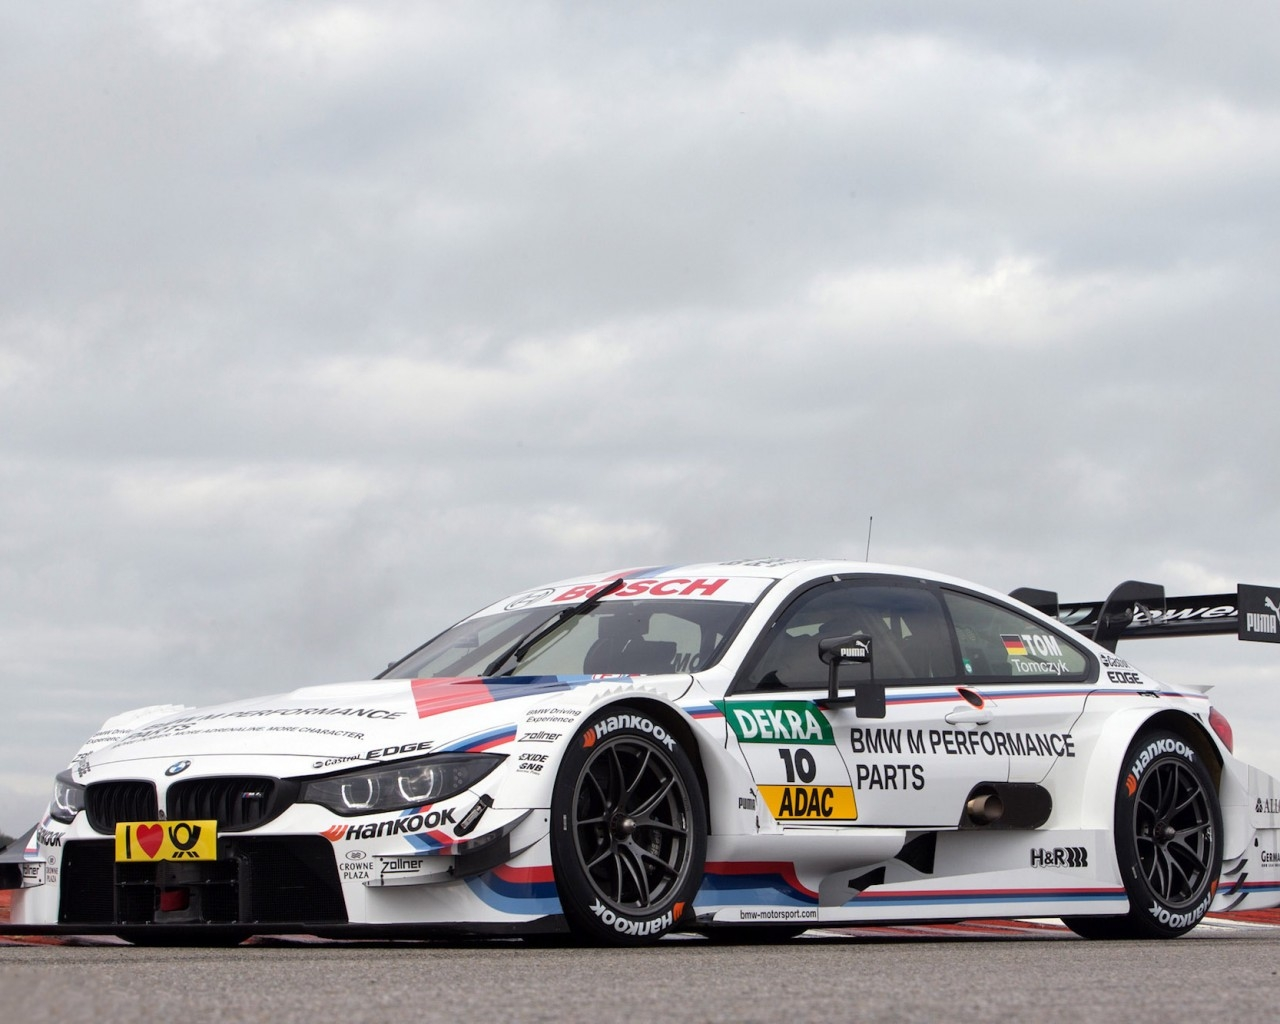 bmw-m-dtm-Picture-Bmw-M-Dtm-Cars-Images-within-Bmw-M-wallpaper-wpc9001287